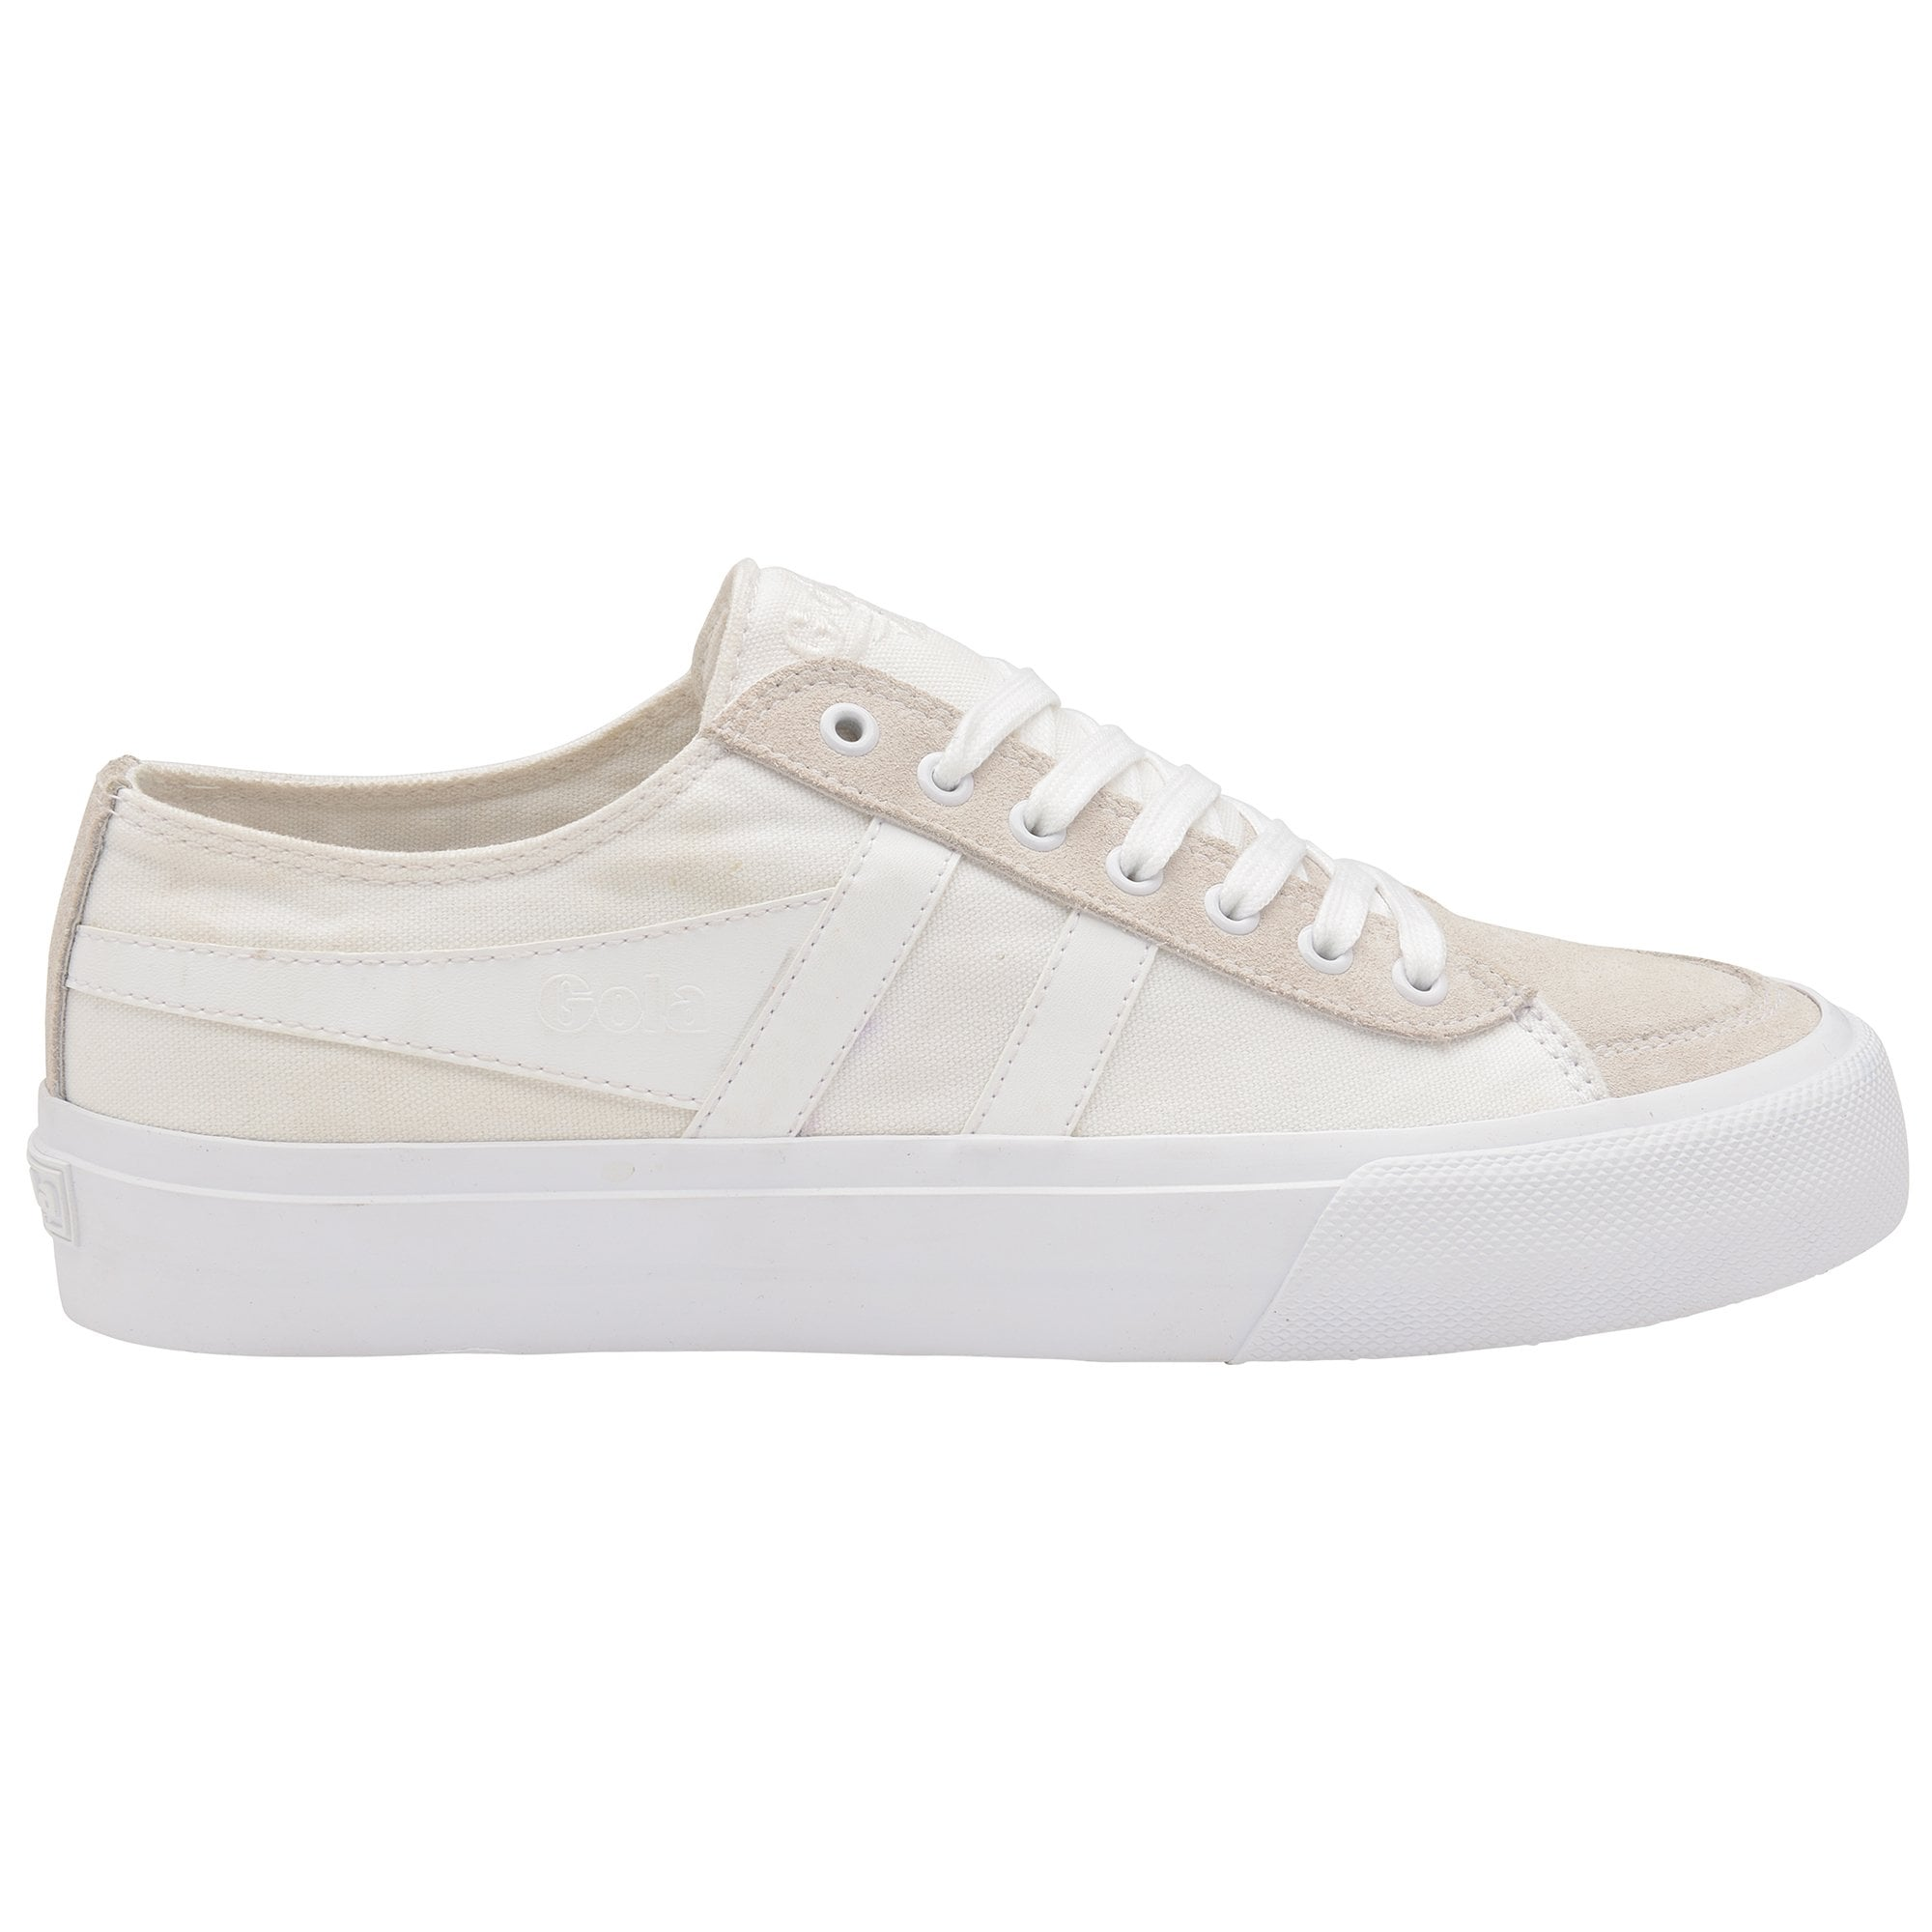 Men's Quota II Plimsoll Sneakers